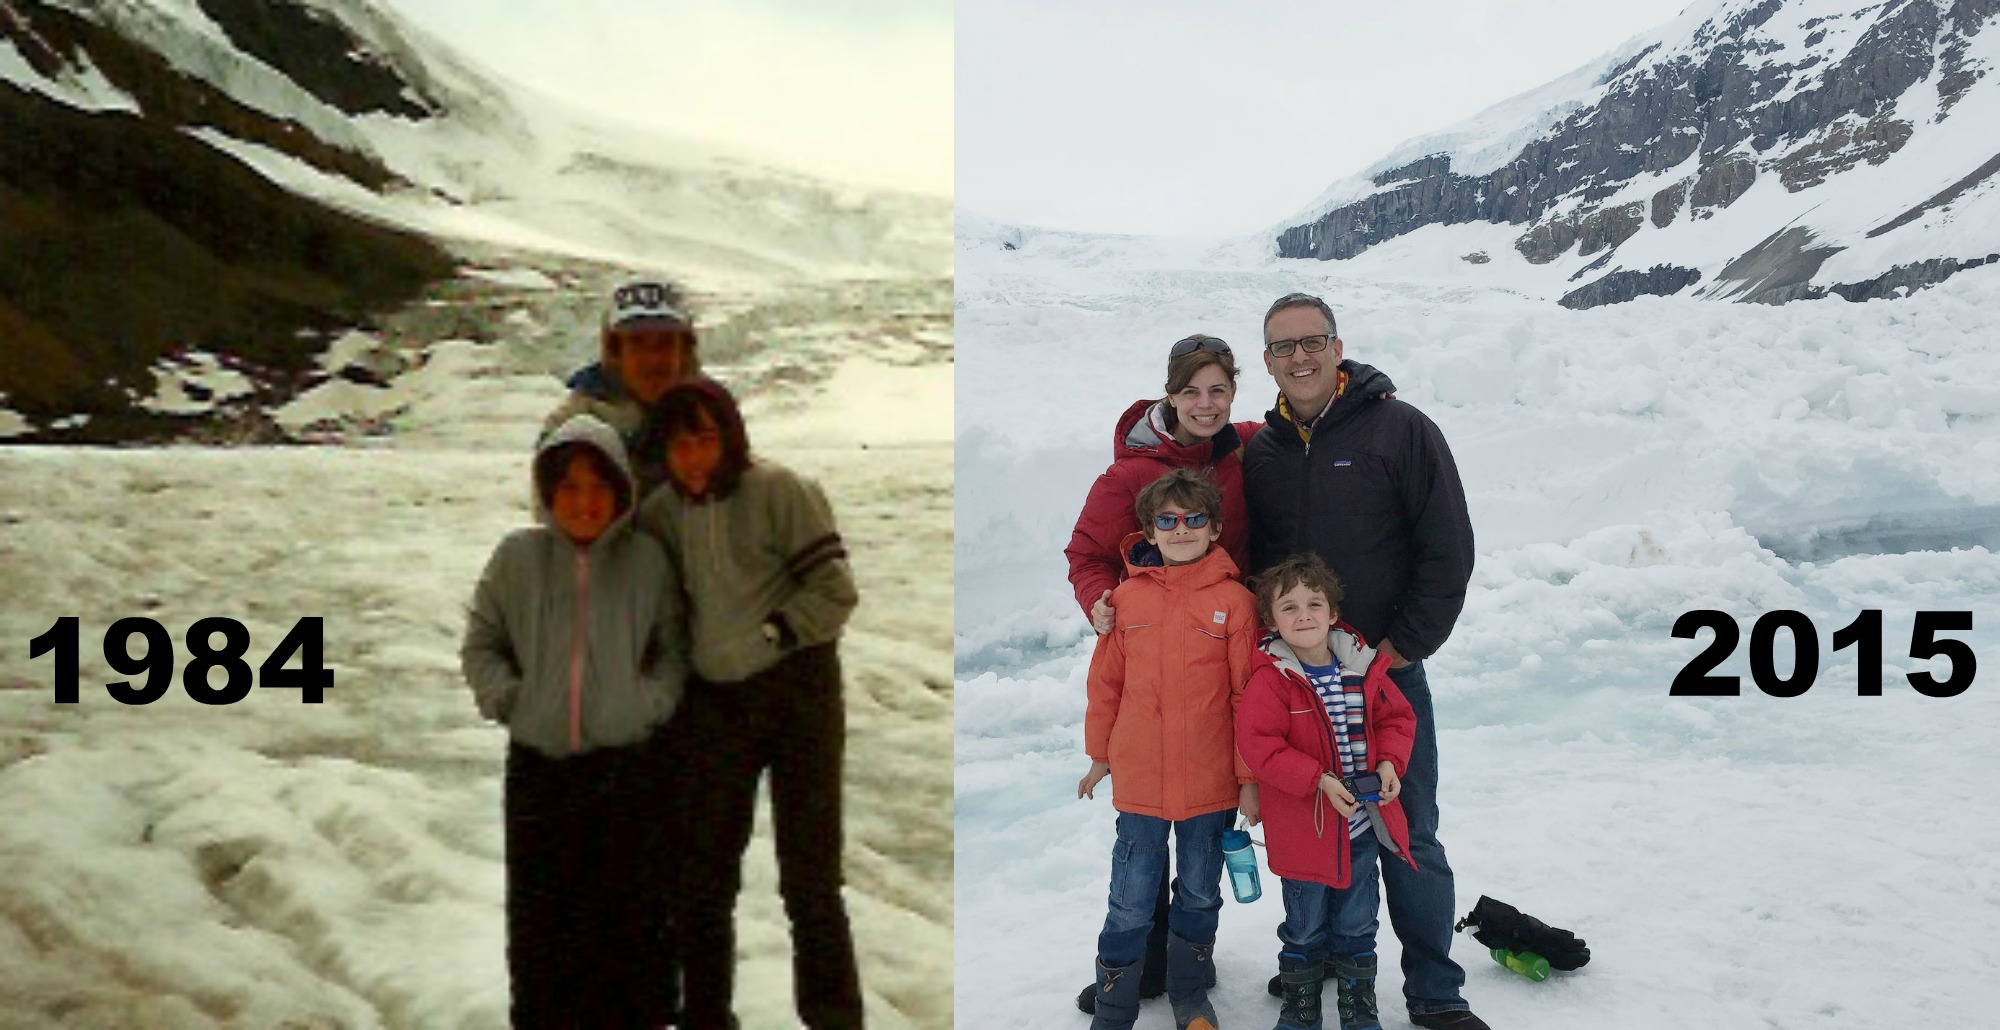 TBT The Athabasca Glacier In 1984 And Again In 2015